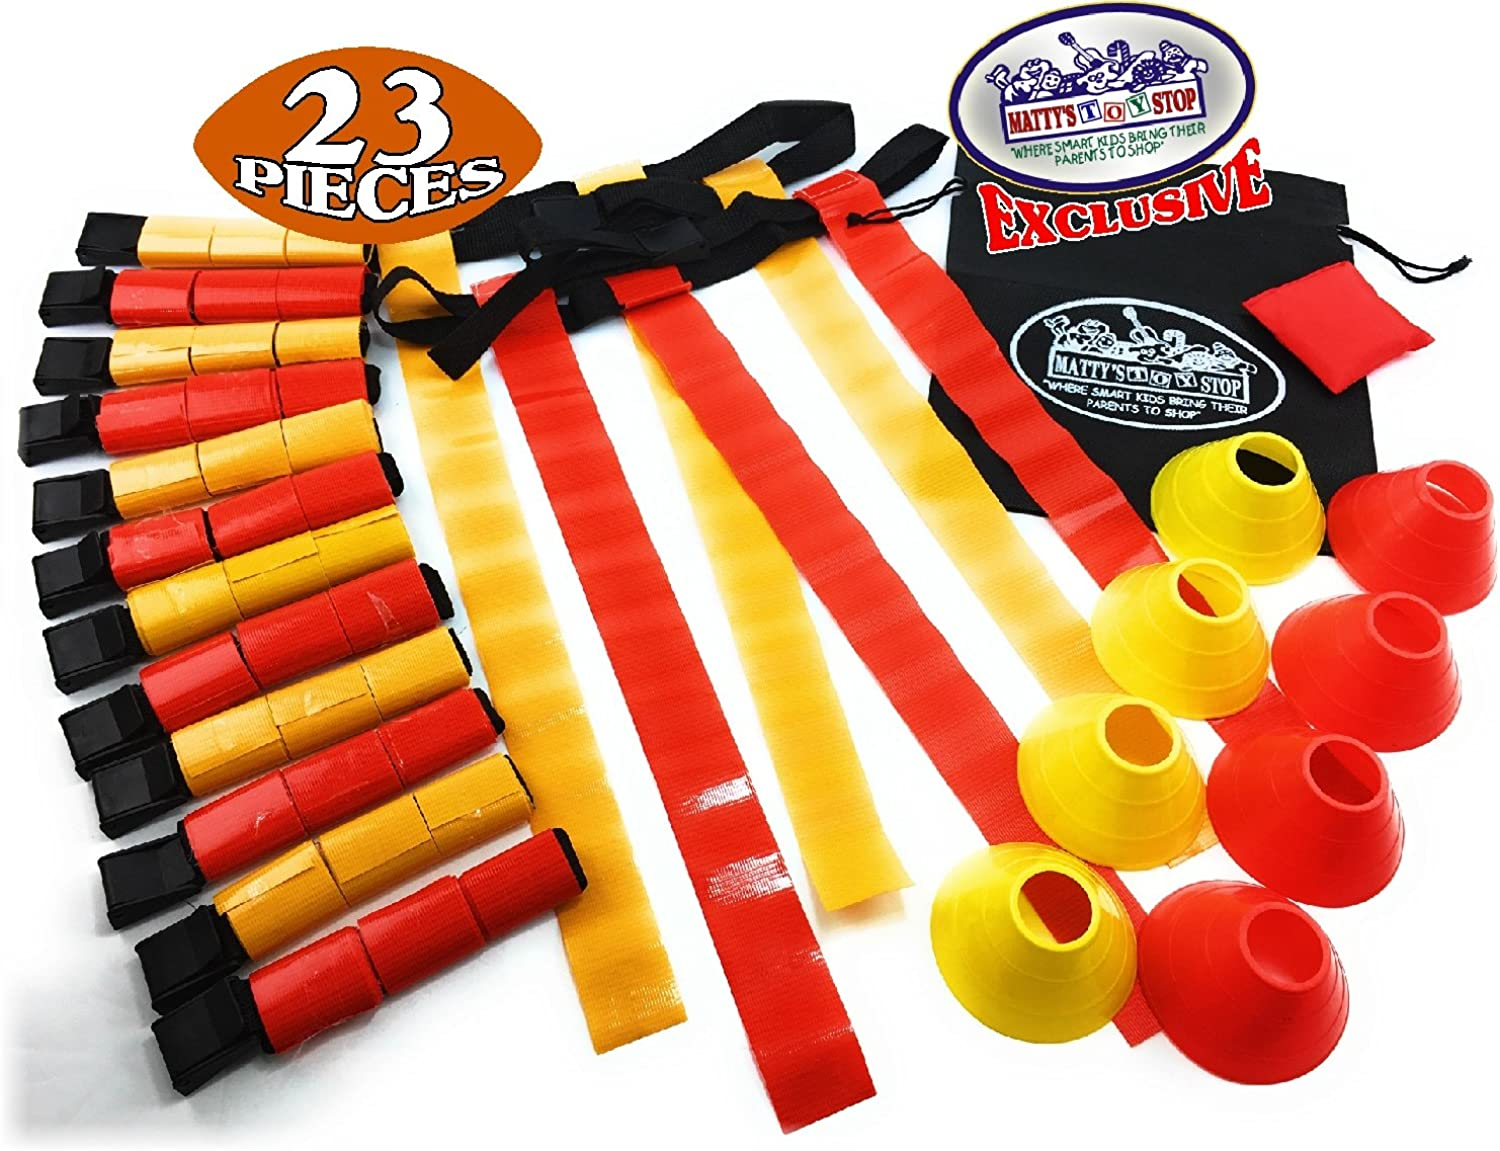 Matty's Toy Stop Deluxe 14Man Flag Football Set with 7 Yellow Belts, 7 Red Belts, 4 Yellow Cones, 4 Red Cones, 1 Red Beanbag Flag & Storage Bag